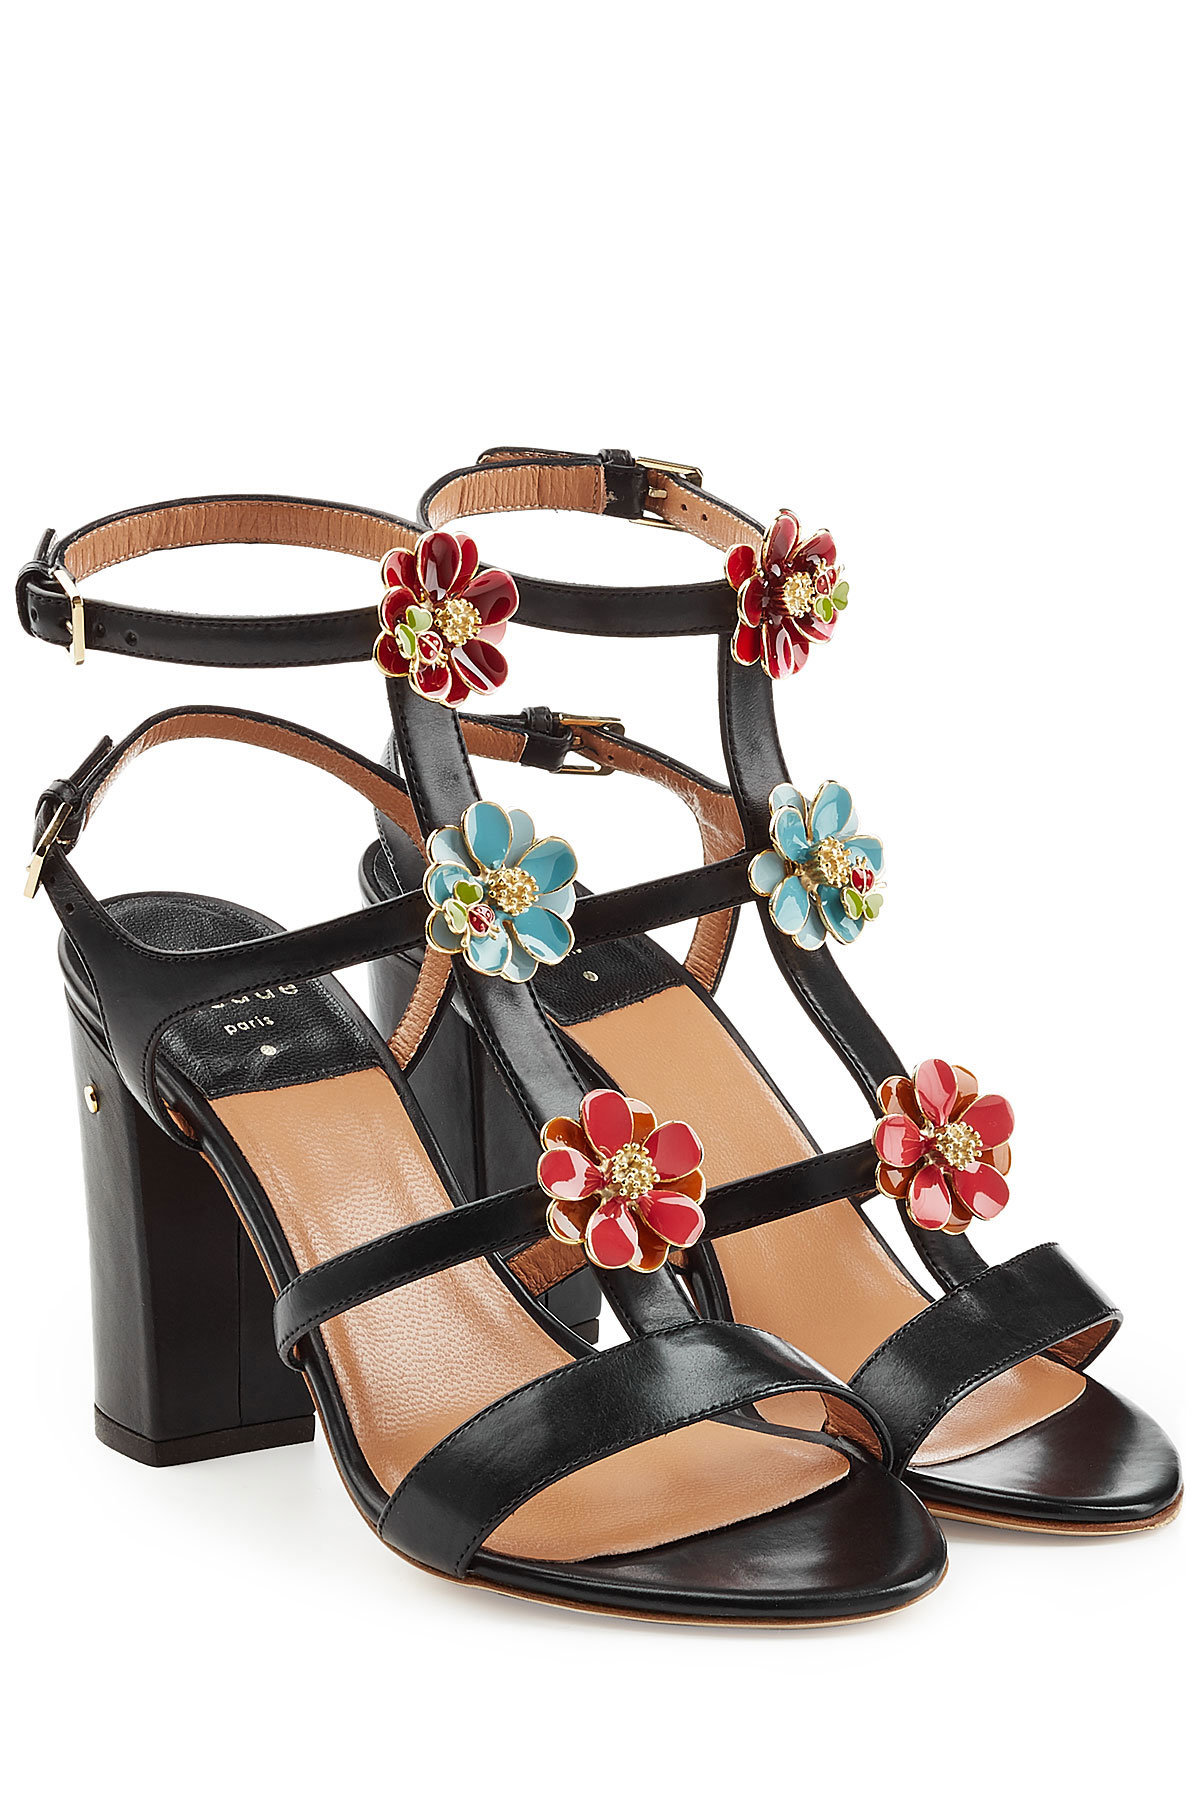 LAURENCE DACADE Leather Sandals with Buckles Gr. IT 39.5 QWbKs